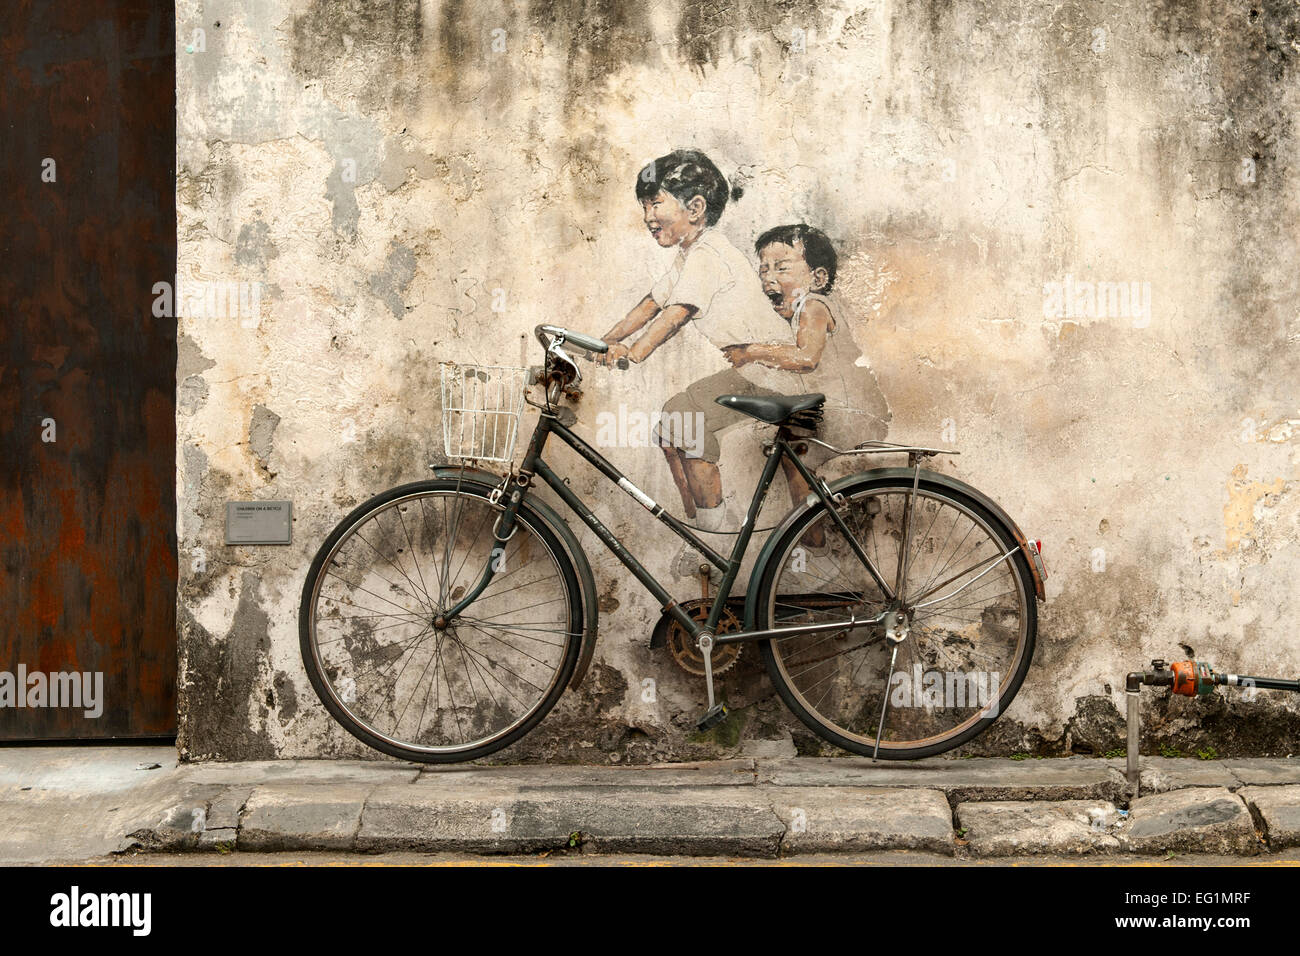 'Children on a bicycle' by Ernest Zacharevic. It is part of the street art in George Town, the capital of - Stock Image